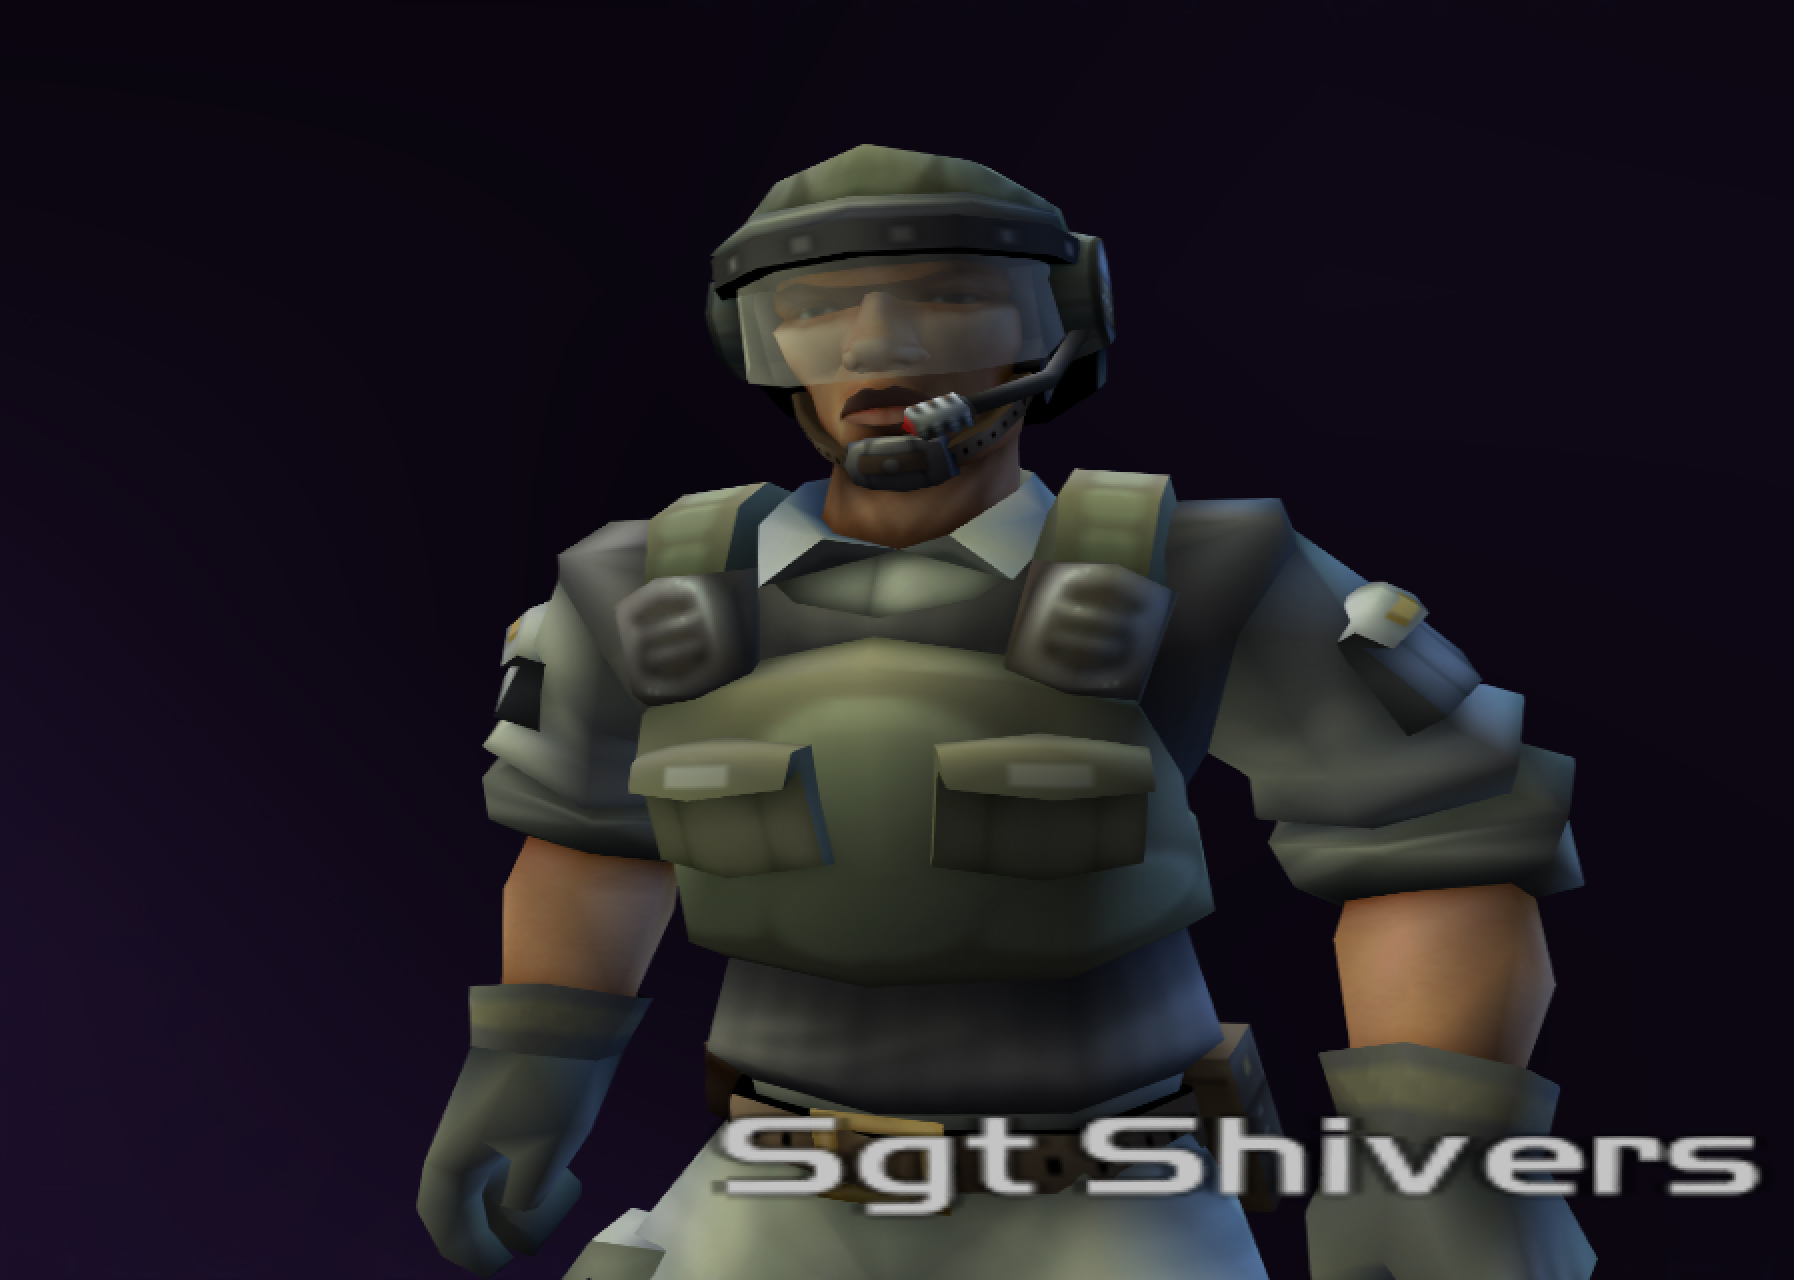 Sergeant Shivers